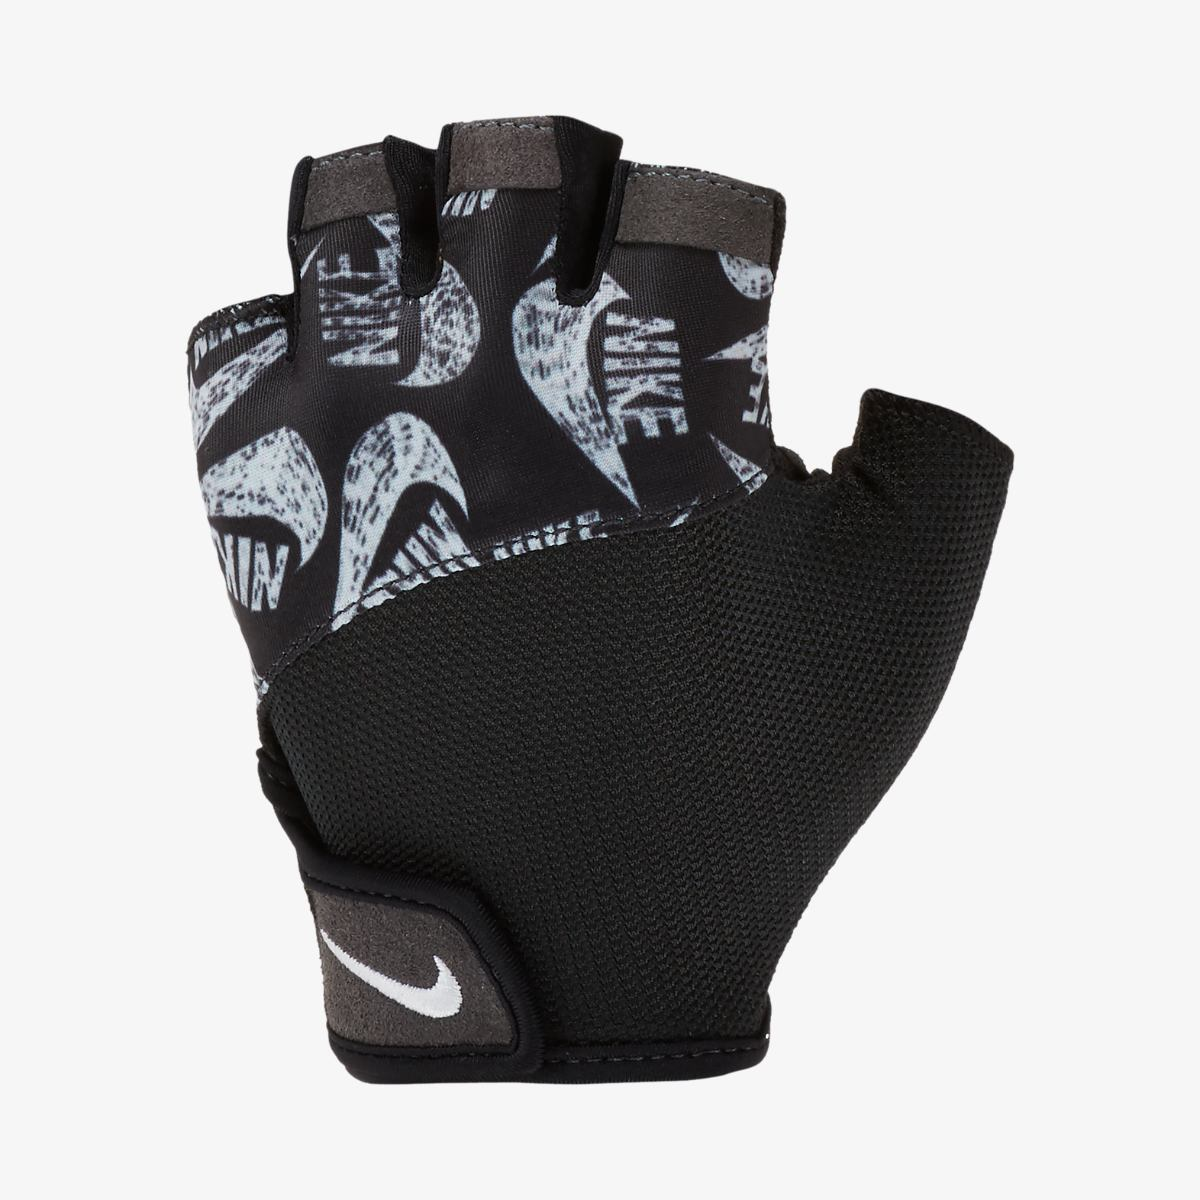 Перчатки для тренинга NIKE WOMENS PRINTED GYM ELEMENTAL FITNESS GLOVES BLACK/BLACK/WHITE M